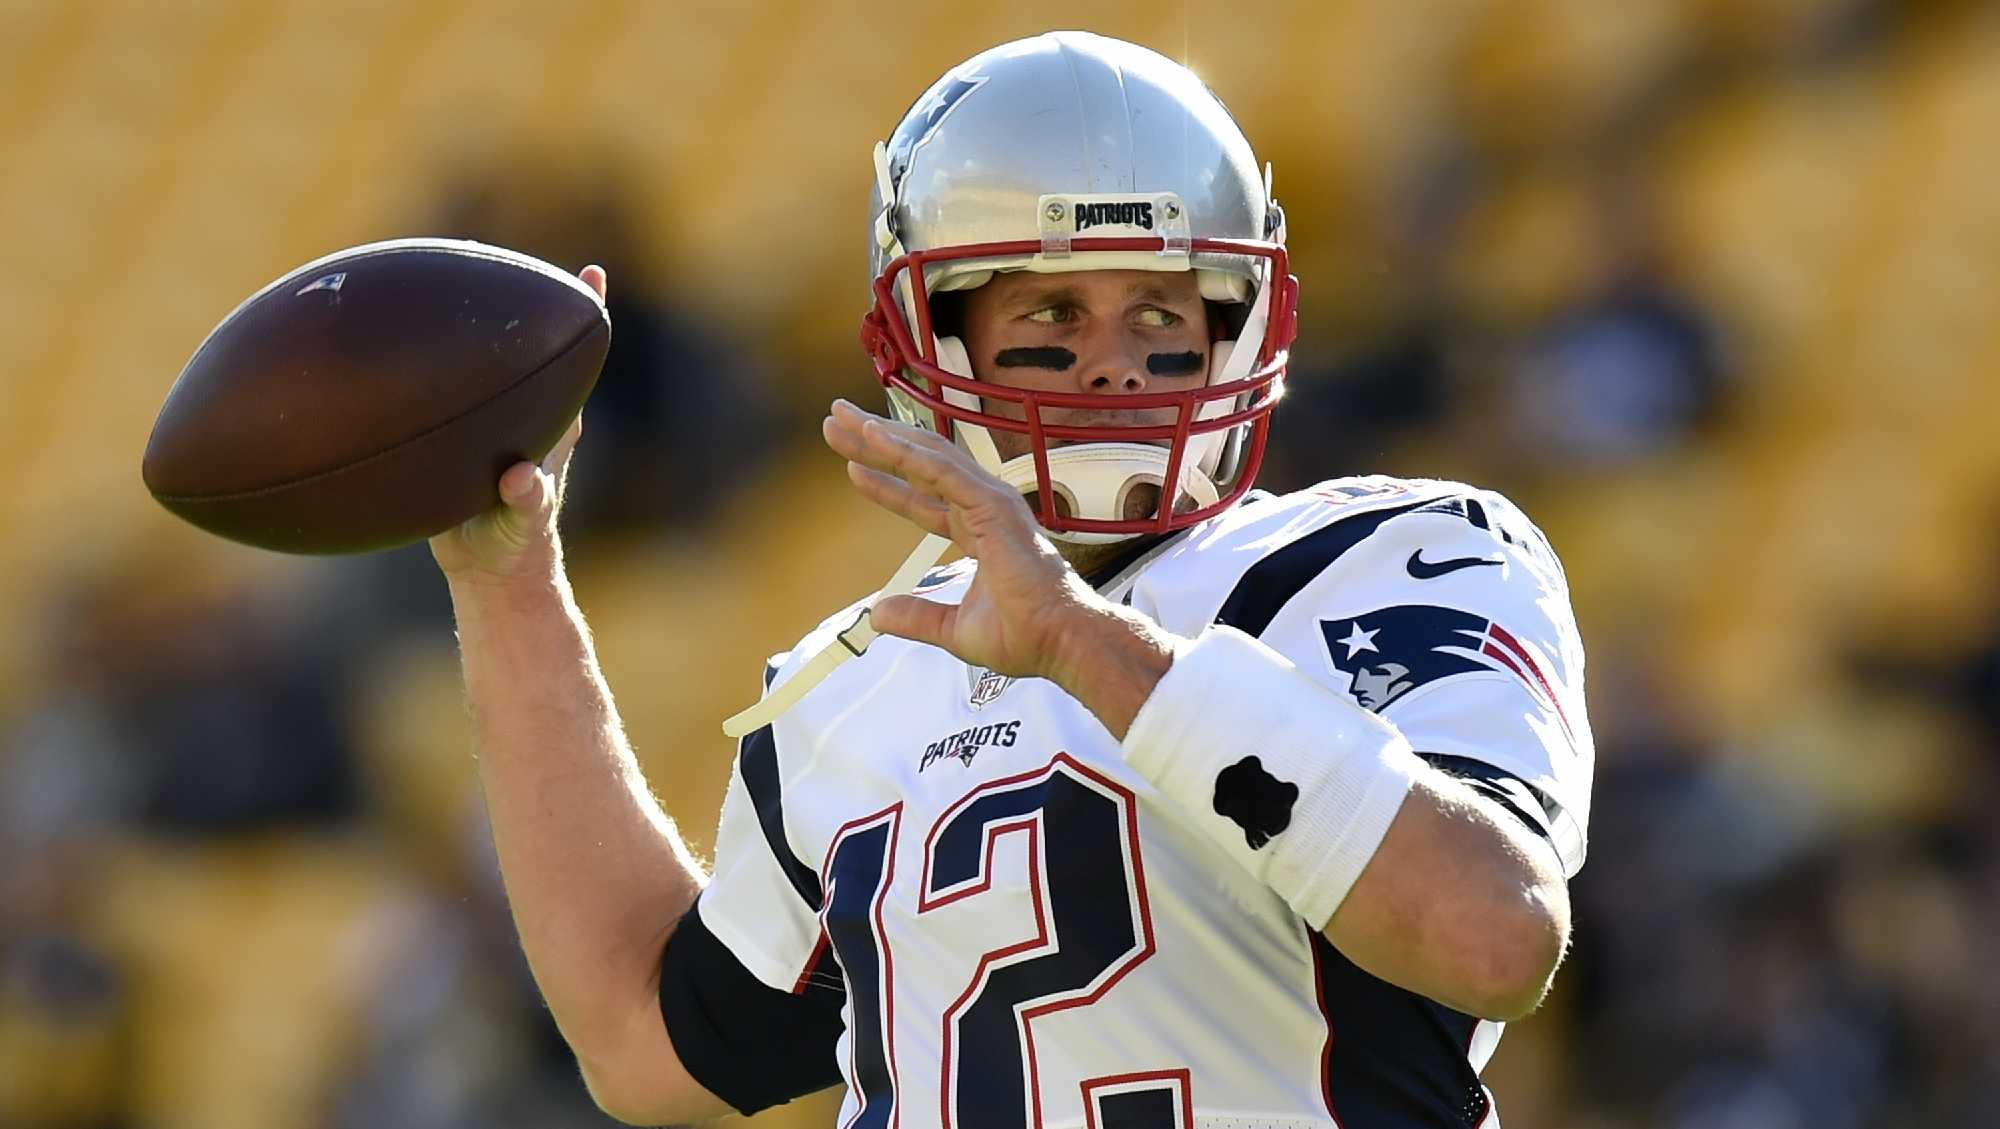 New England Patriots quarterback Tom Brady (12) warms up before an NFL football game against the Pittsburgh Steelers in Pittsburgh, Sunday, Oct. 23, 2016.